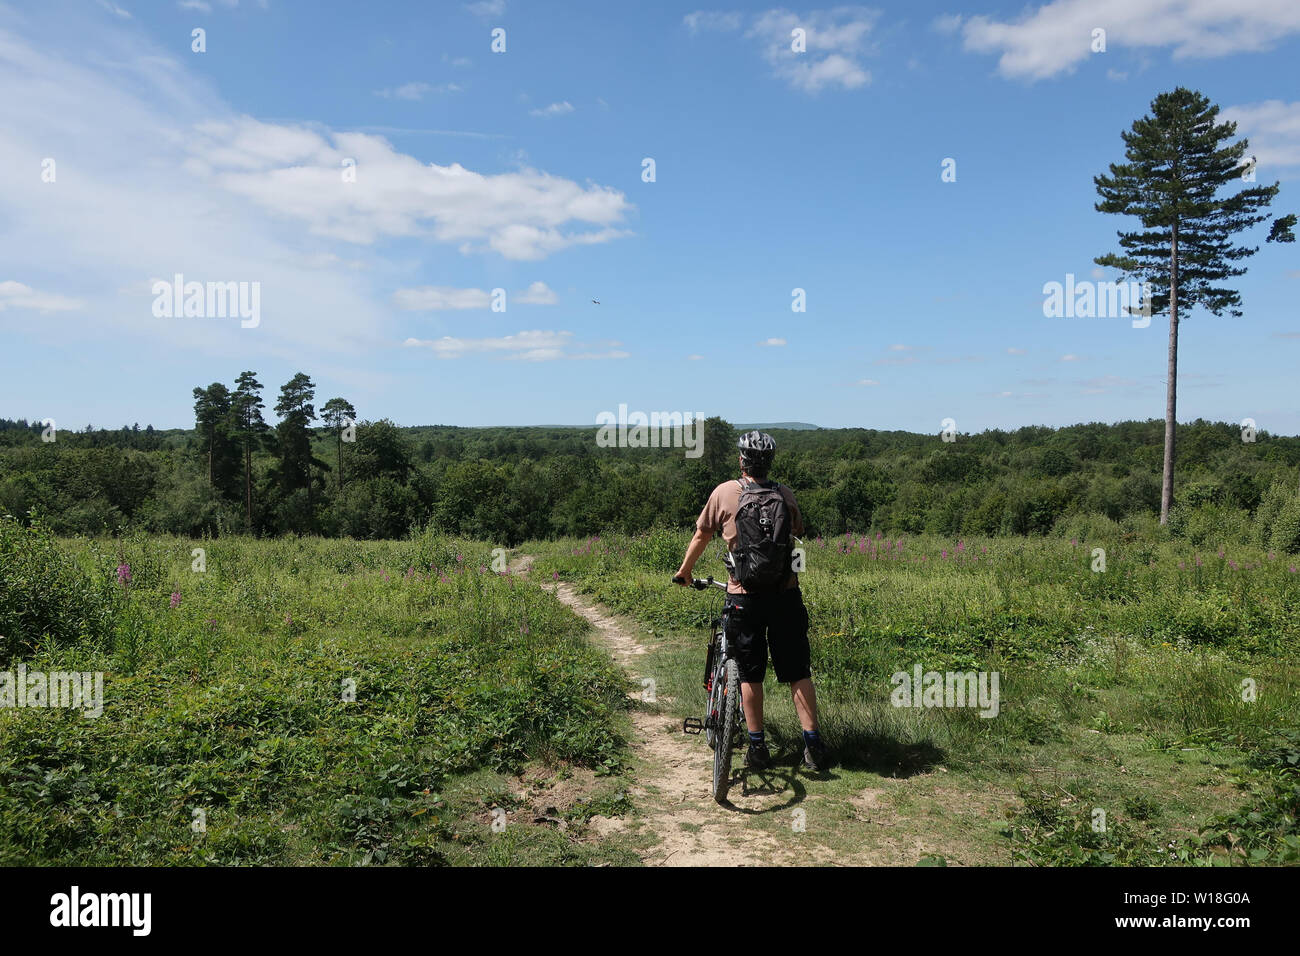 Abbots wood,UK. 1st July 2019. UK weather.A cyclist enjoys the view from Abbots wood near Hailsham in today's summer sun.Abbots wood, East Sussex,UK. Credit:Ed Brown/Alamy Live News - Stock Image